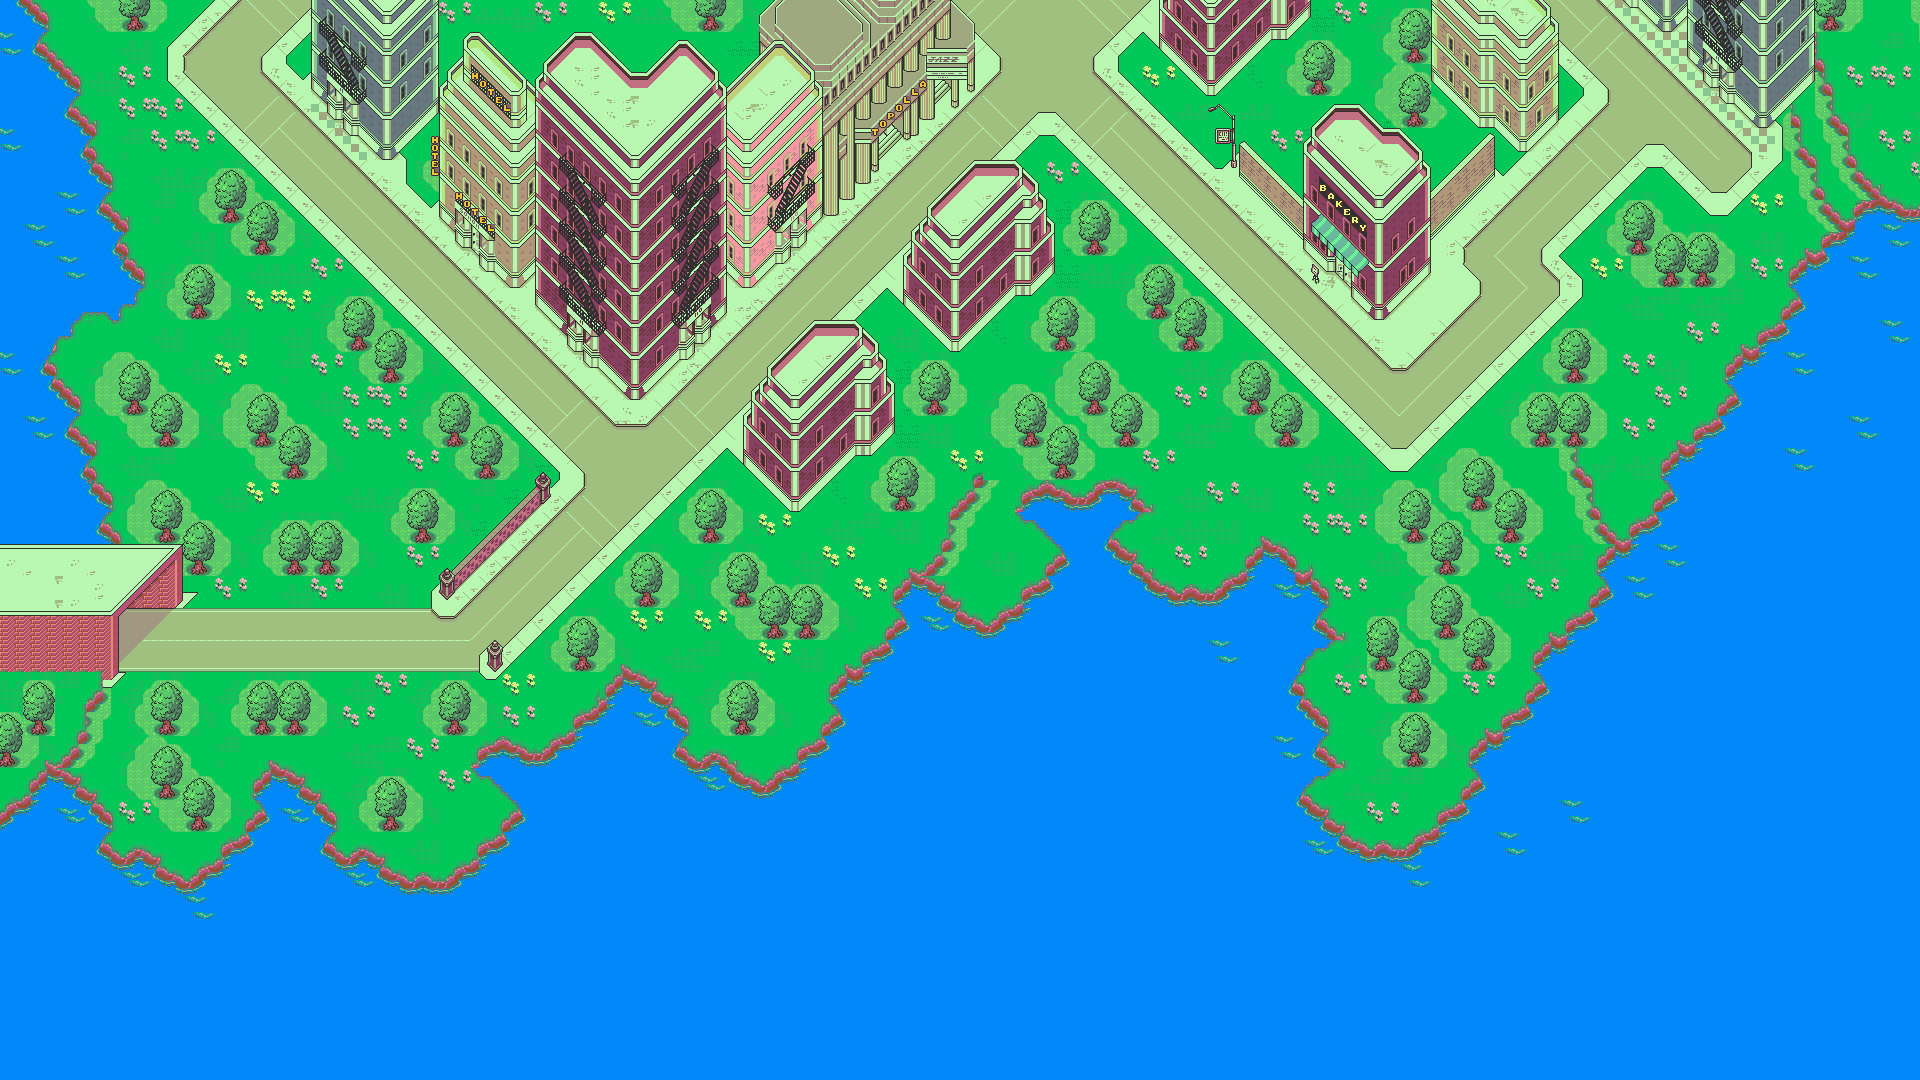 1920x1080 Earthbound ID: 531928540 Wallpaper for Free - Newest High Resolution Pic